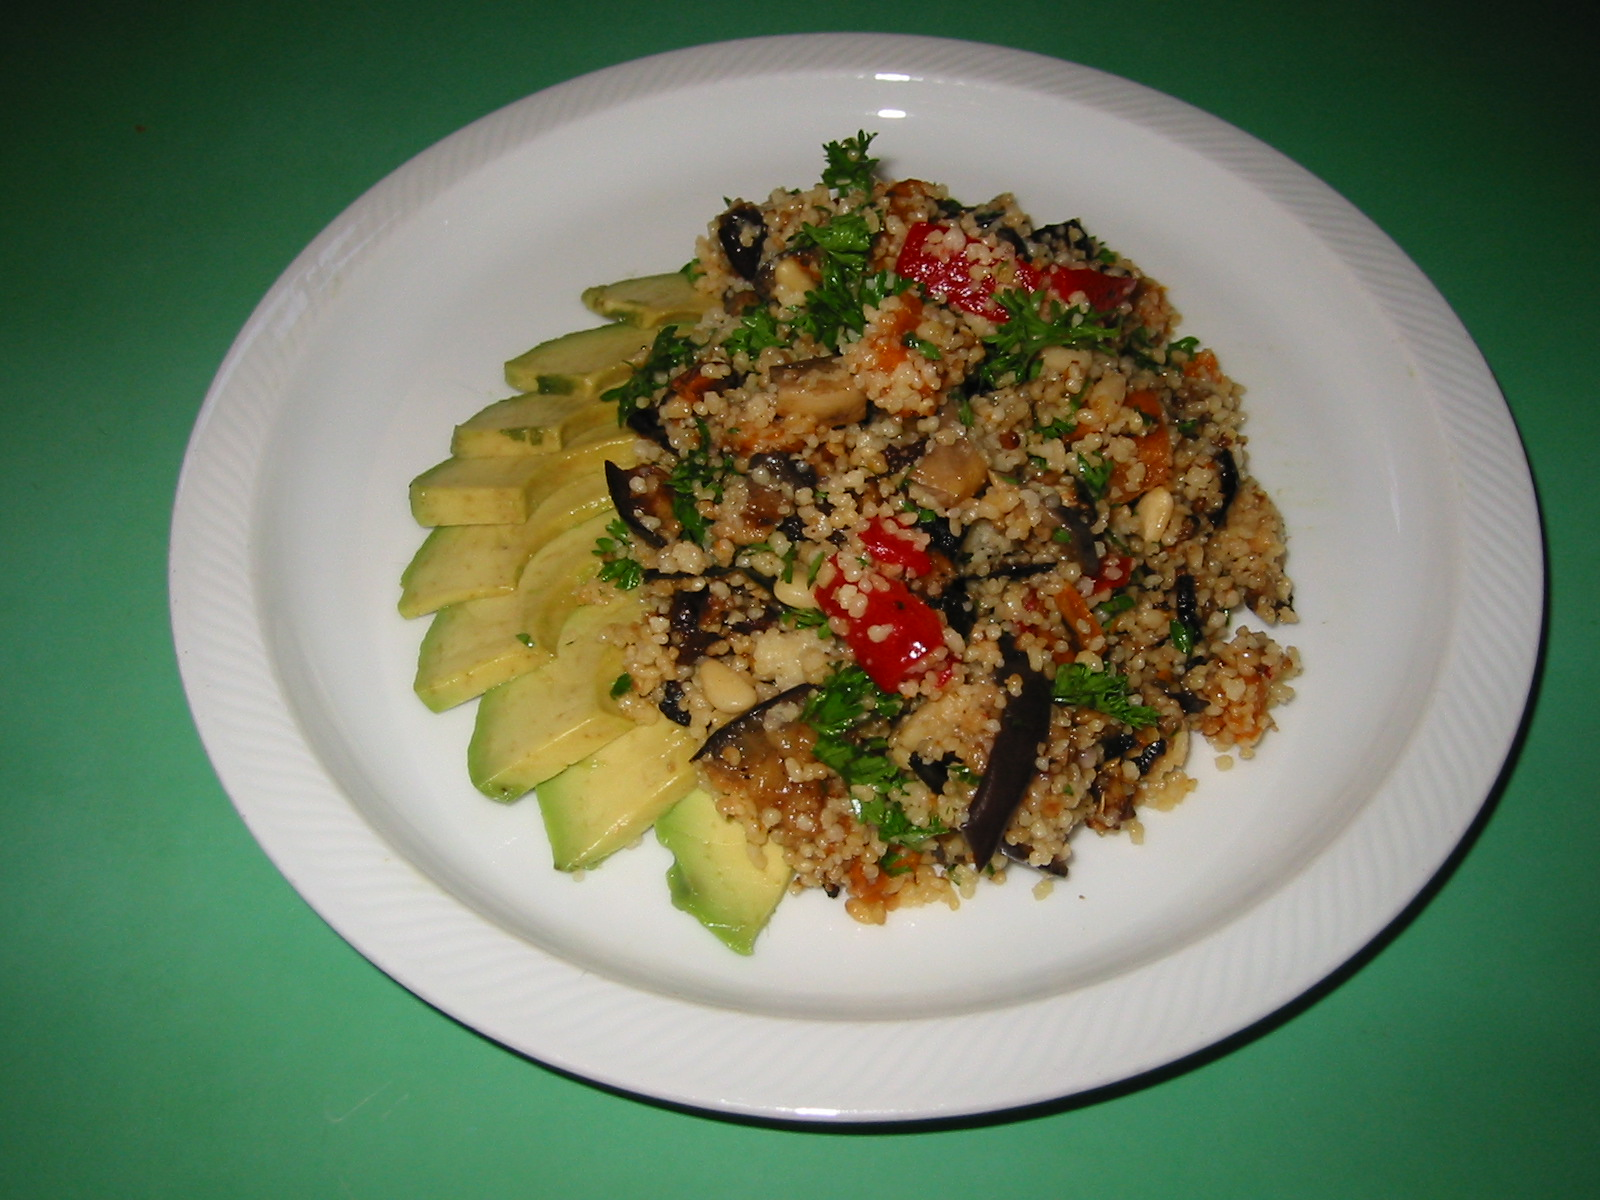 couscous and roasted vege salad